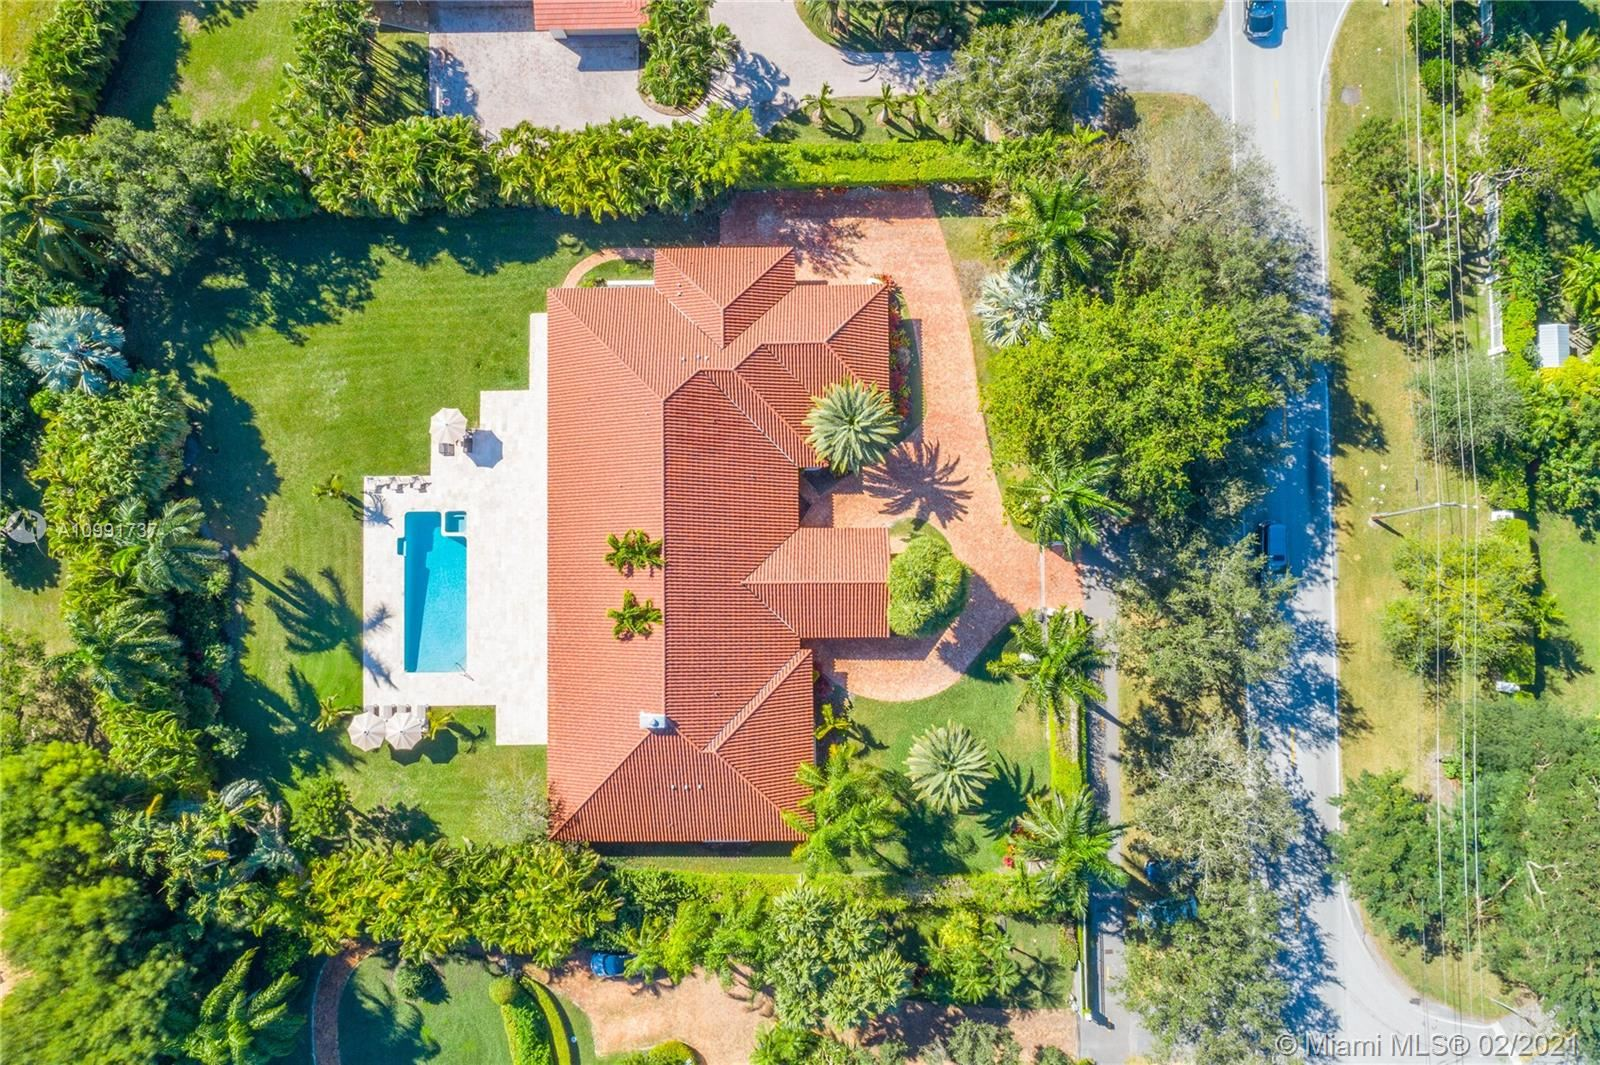 8251 Old Cutler Rd, Coral Gables, FL 33143 - #: A10991737